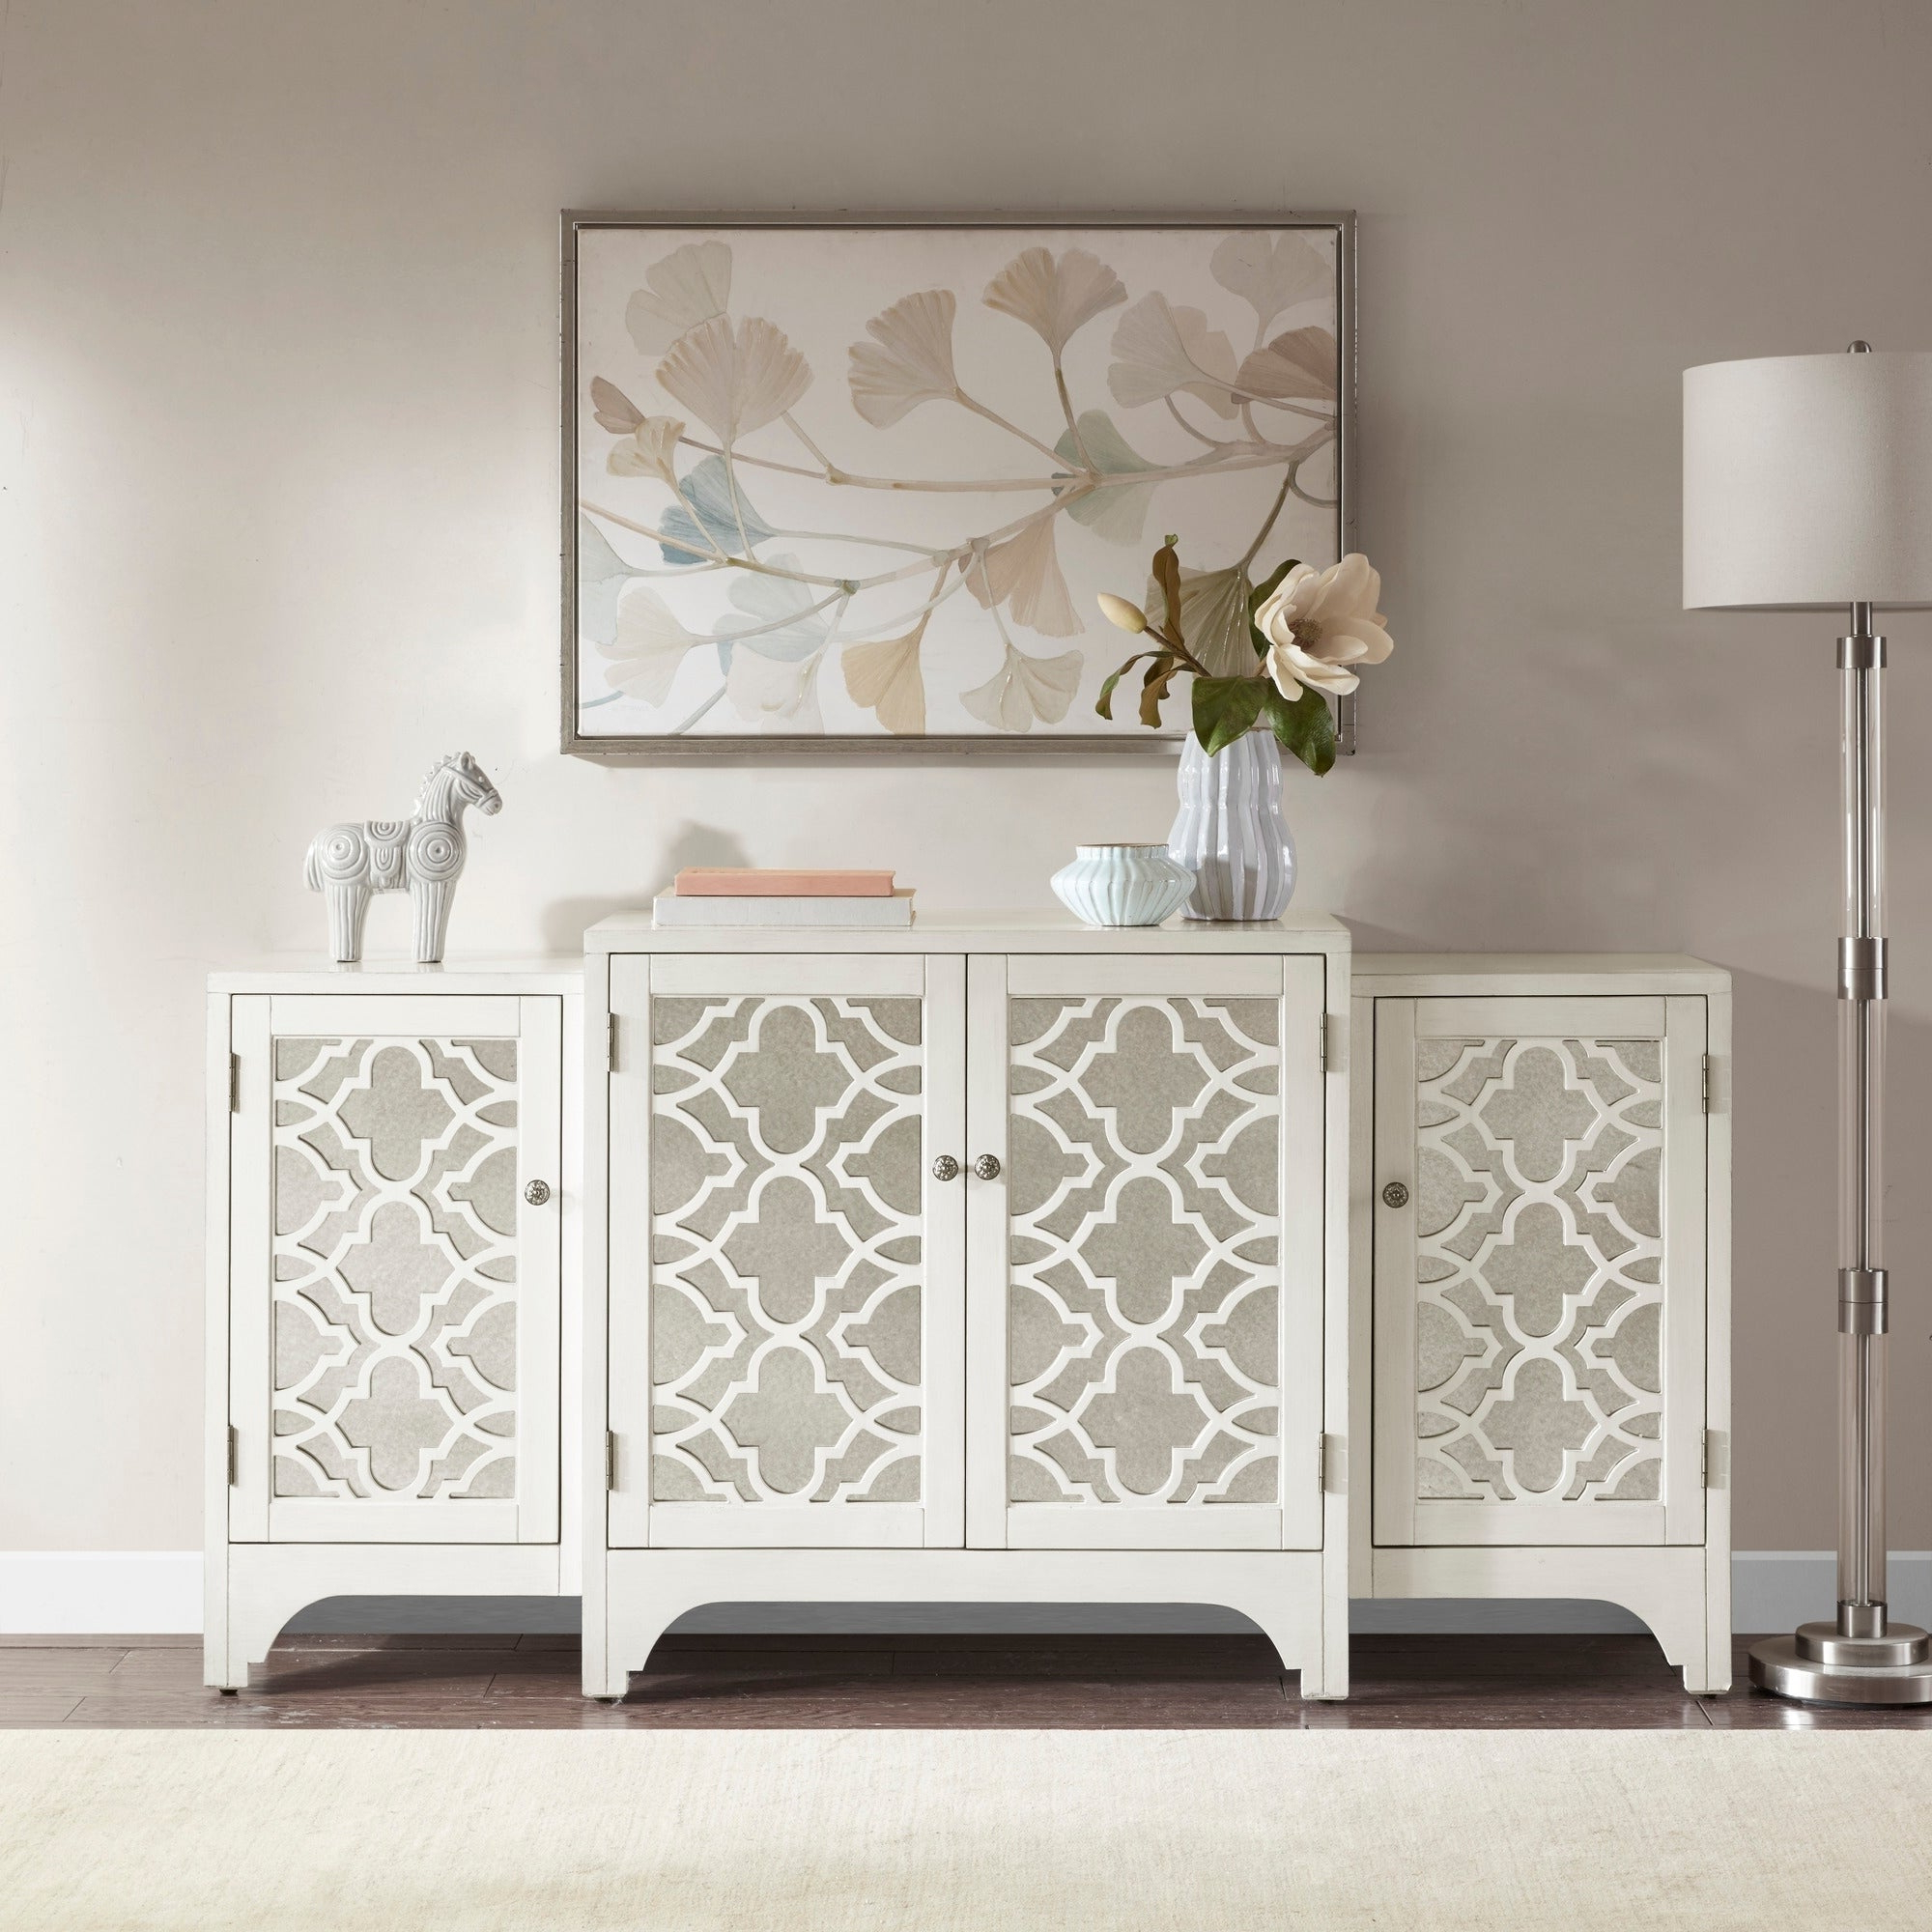 Buy Mirrored Buffets, Sideboards & China Cabinets Online At For Mirrored Buffets (View 4 of 20)